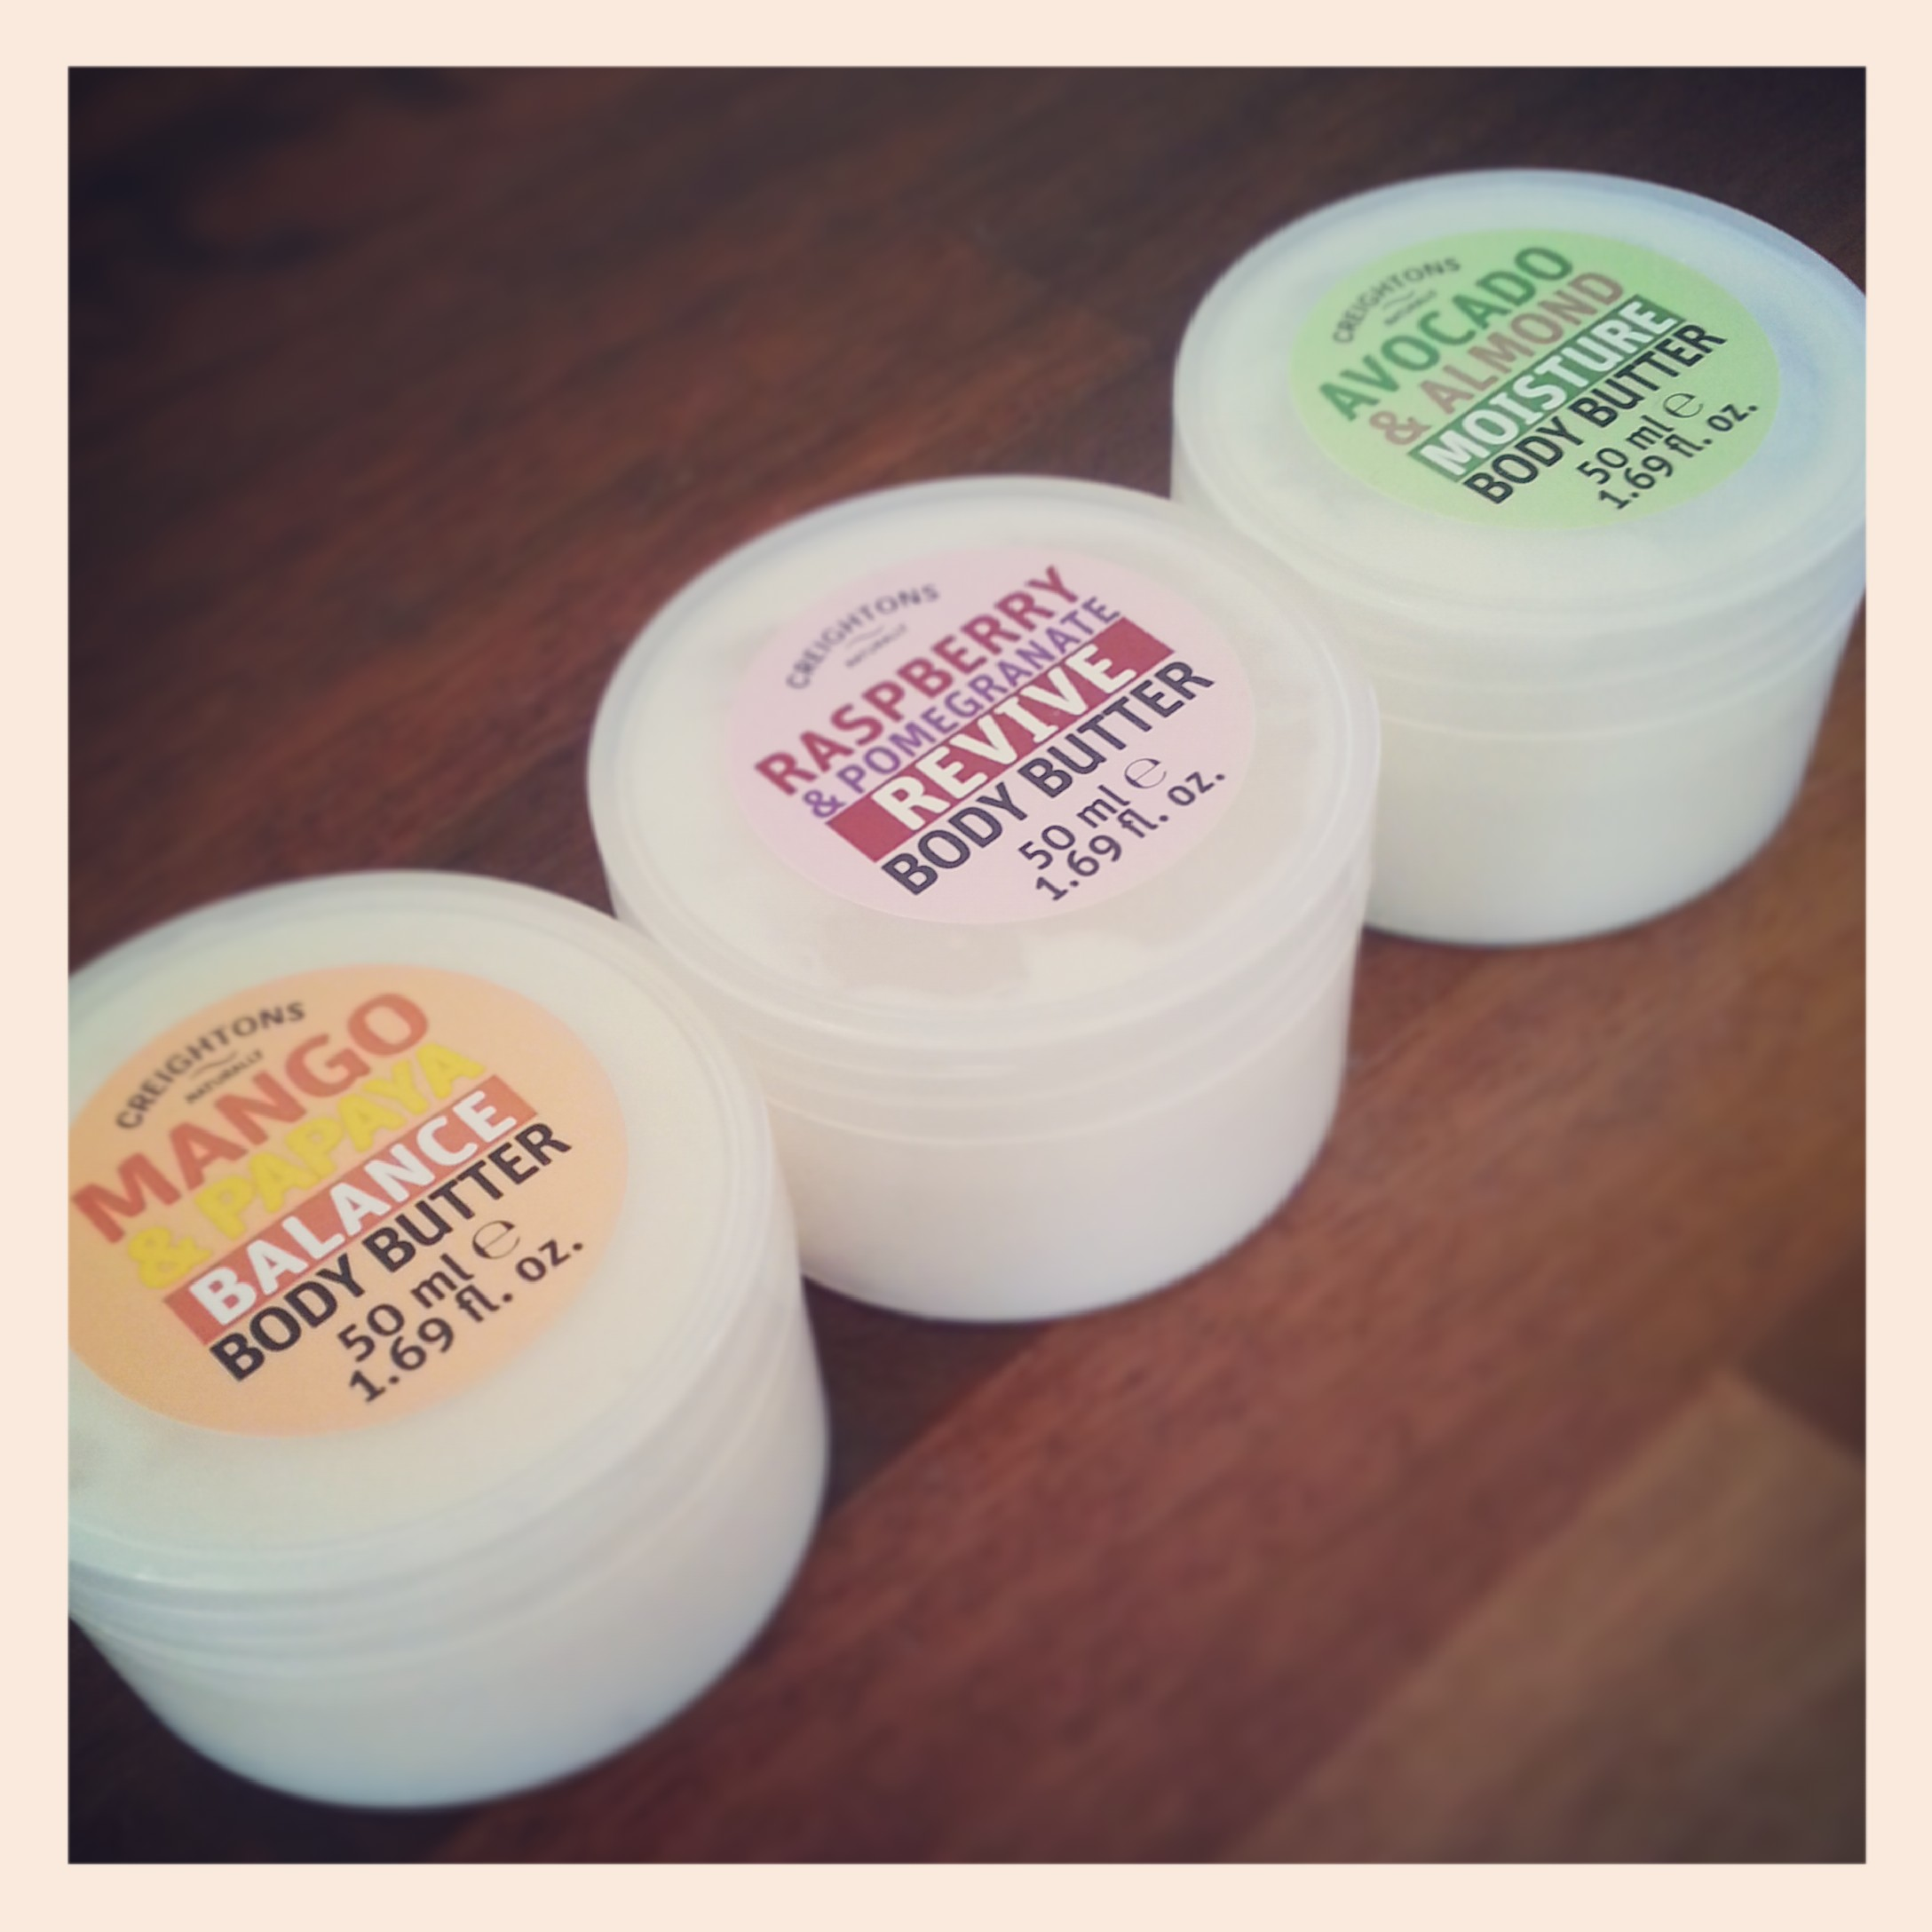 Budvenlig, Altenativ, The Body Shop Body Butter